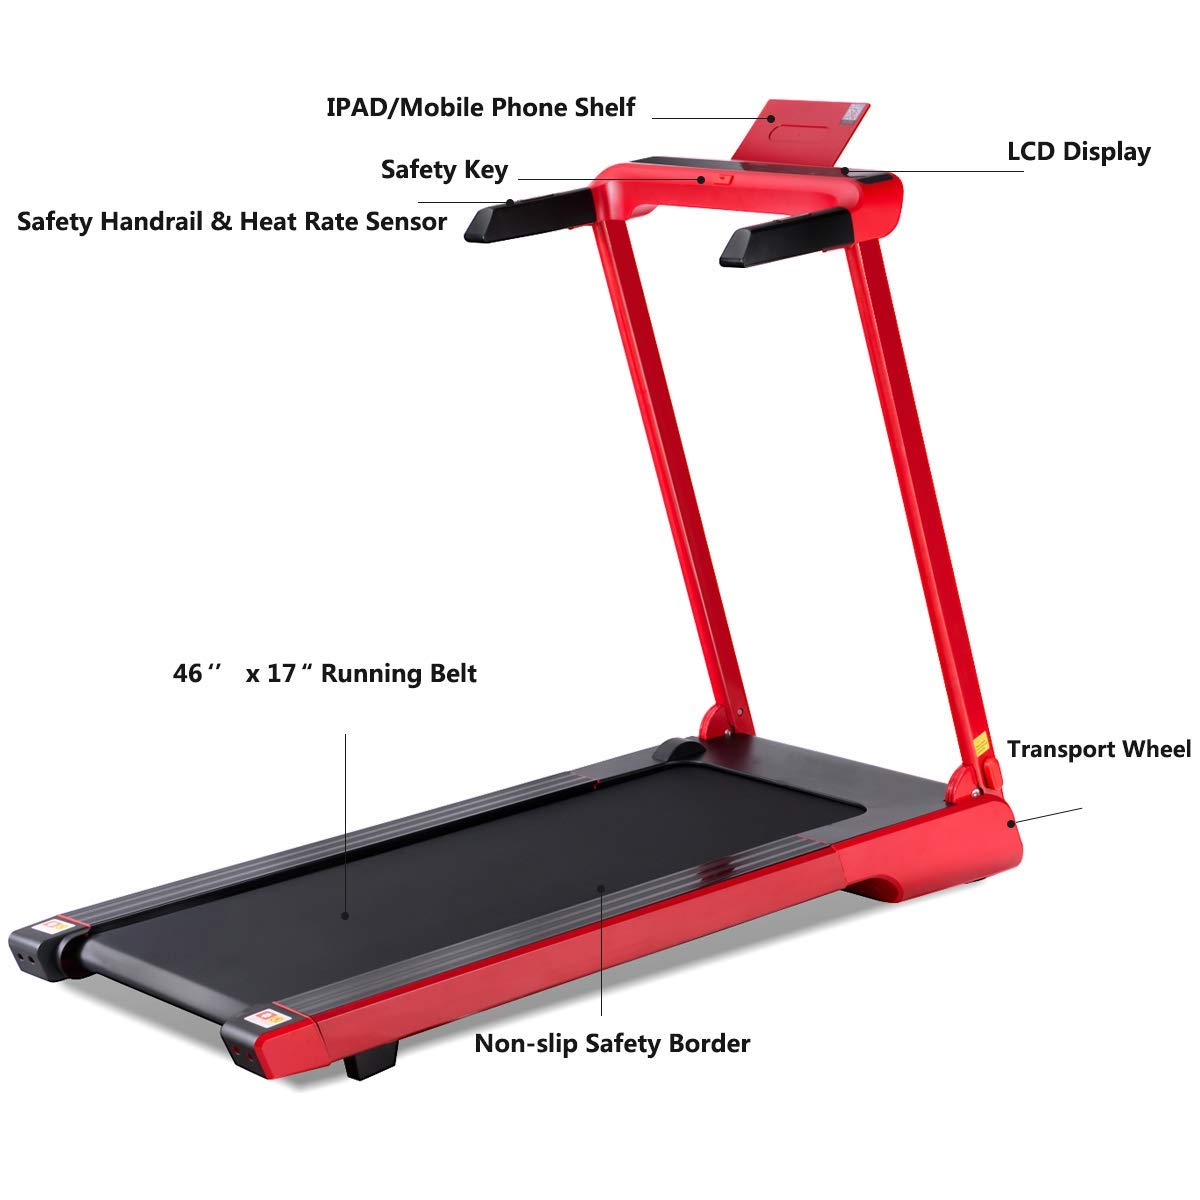 Goplus 2.25 HP Folding Treadmill Electric Cardio Fitness Jogging Running Machine Portable Motorized Power Slim Treadmill with Sports App and LED Display (Red) by Goplus (Image #5)